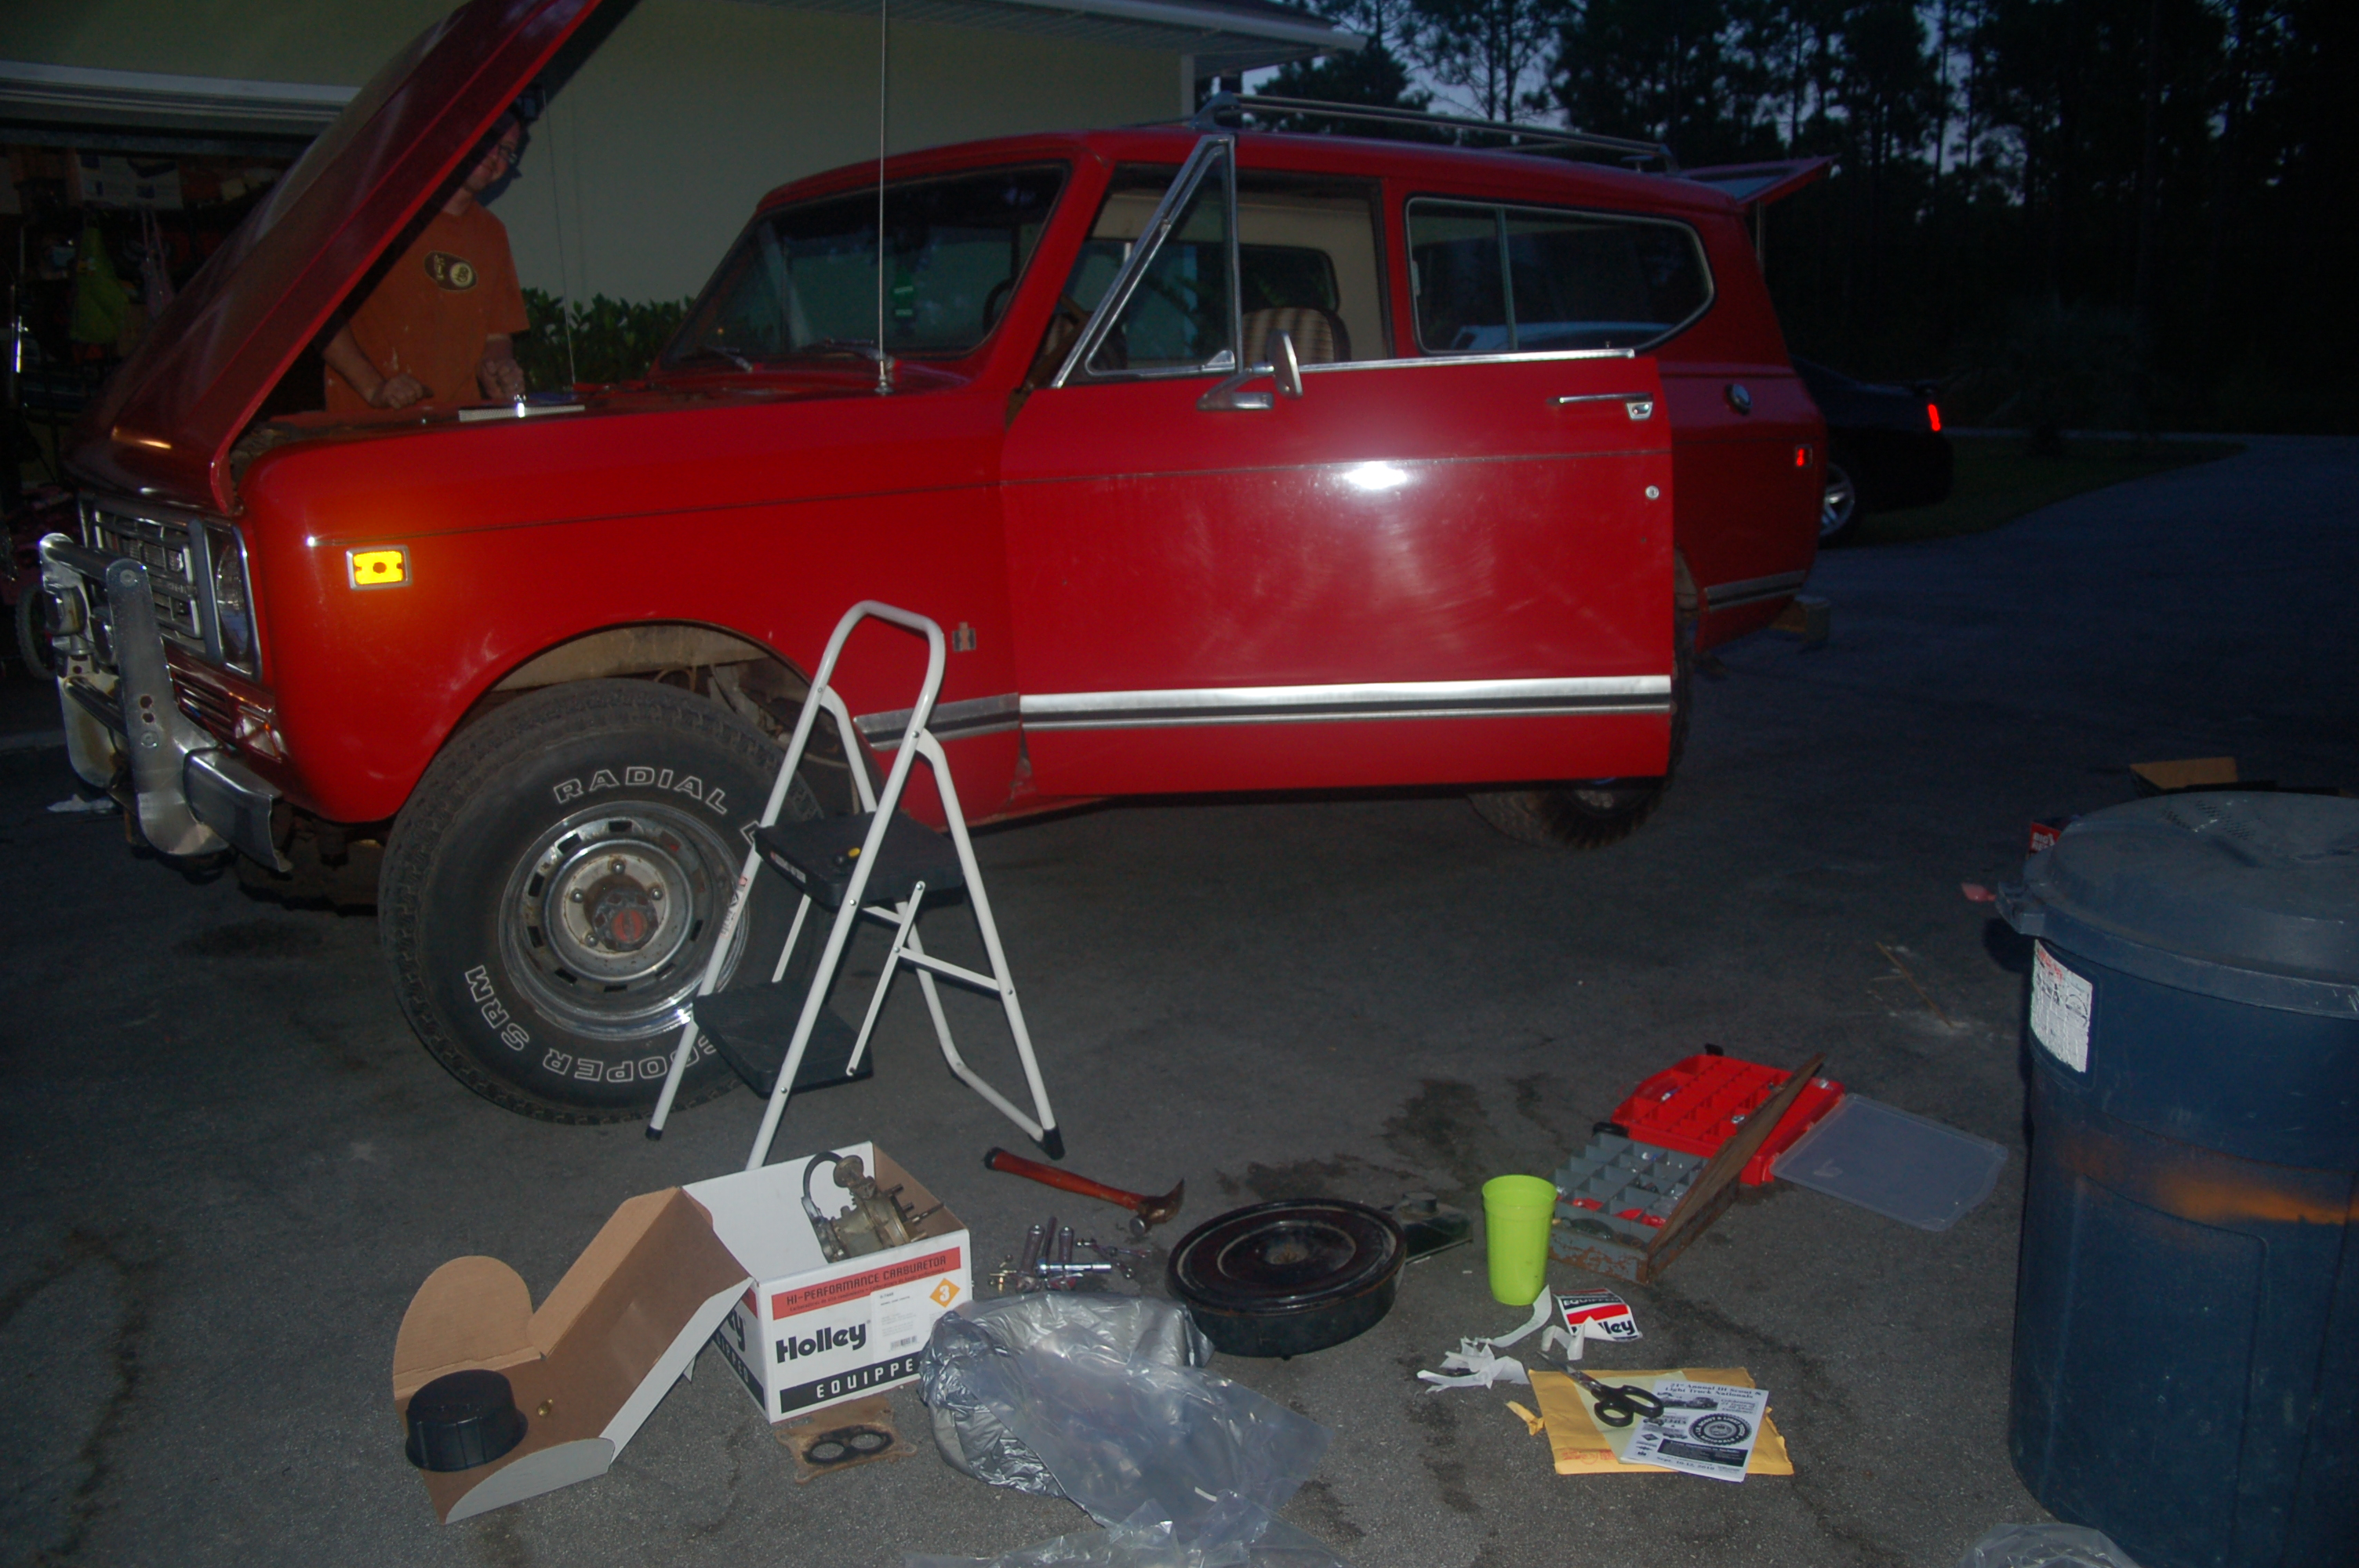 Nc 1977 Scout Ii Binderplanet Holley 4150 Exploded Diagrams The Old Car Manual Project